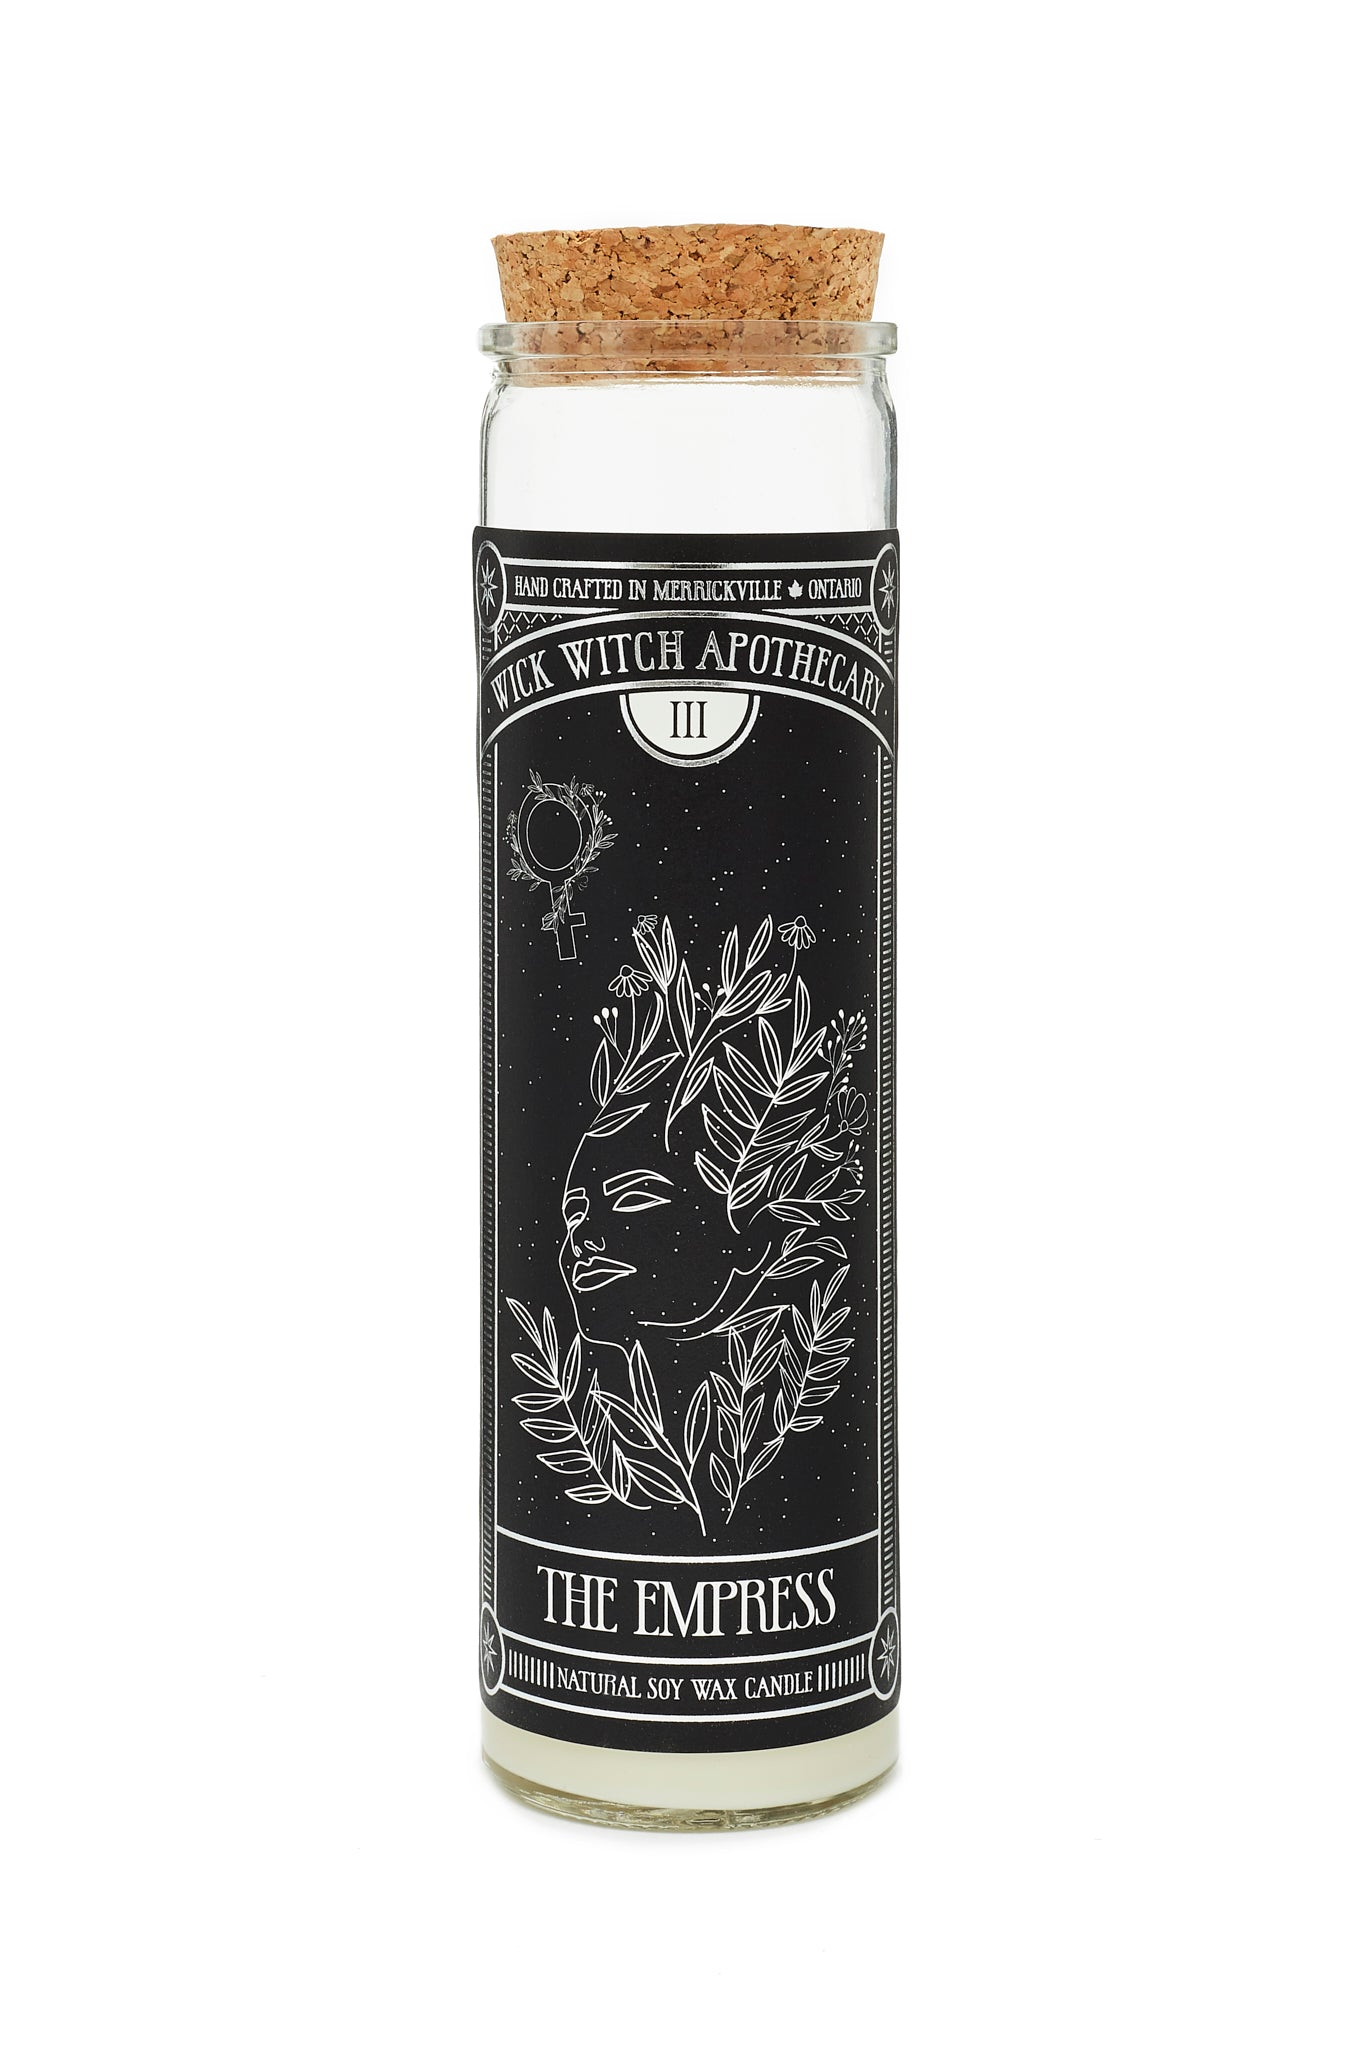 THE EMPRESS TAROT CANDLE